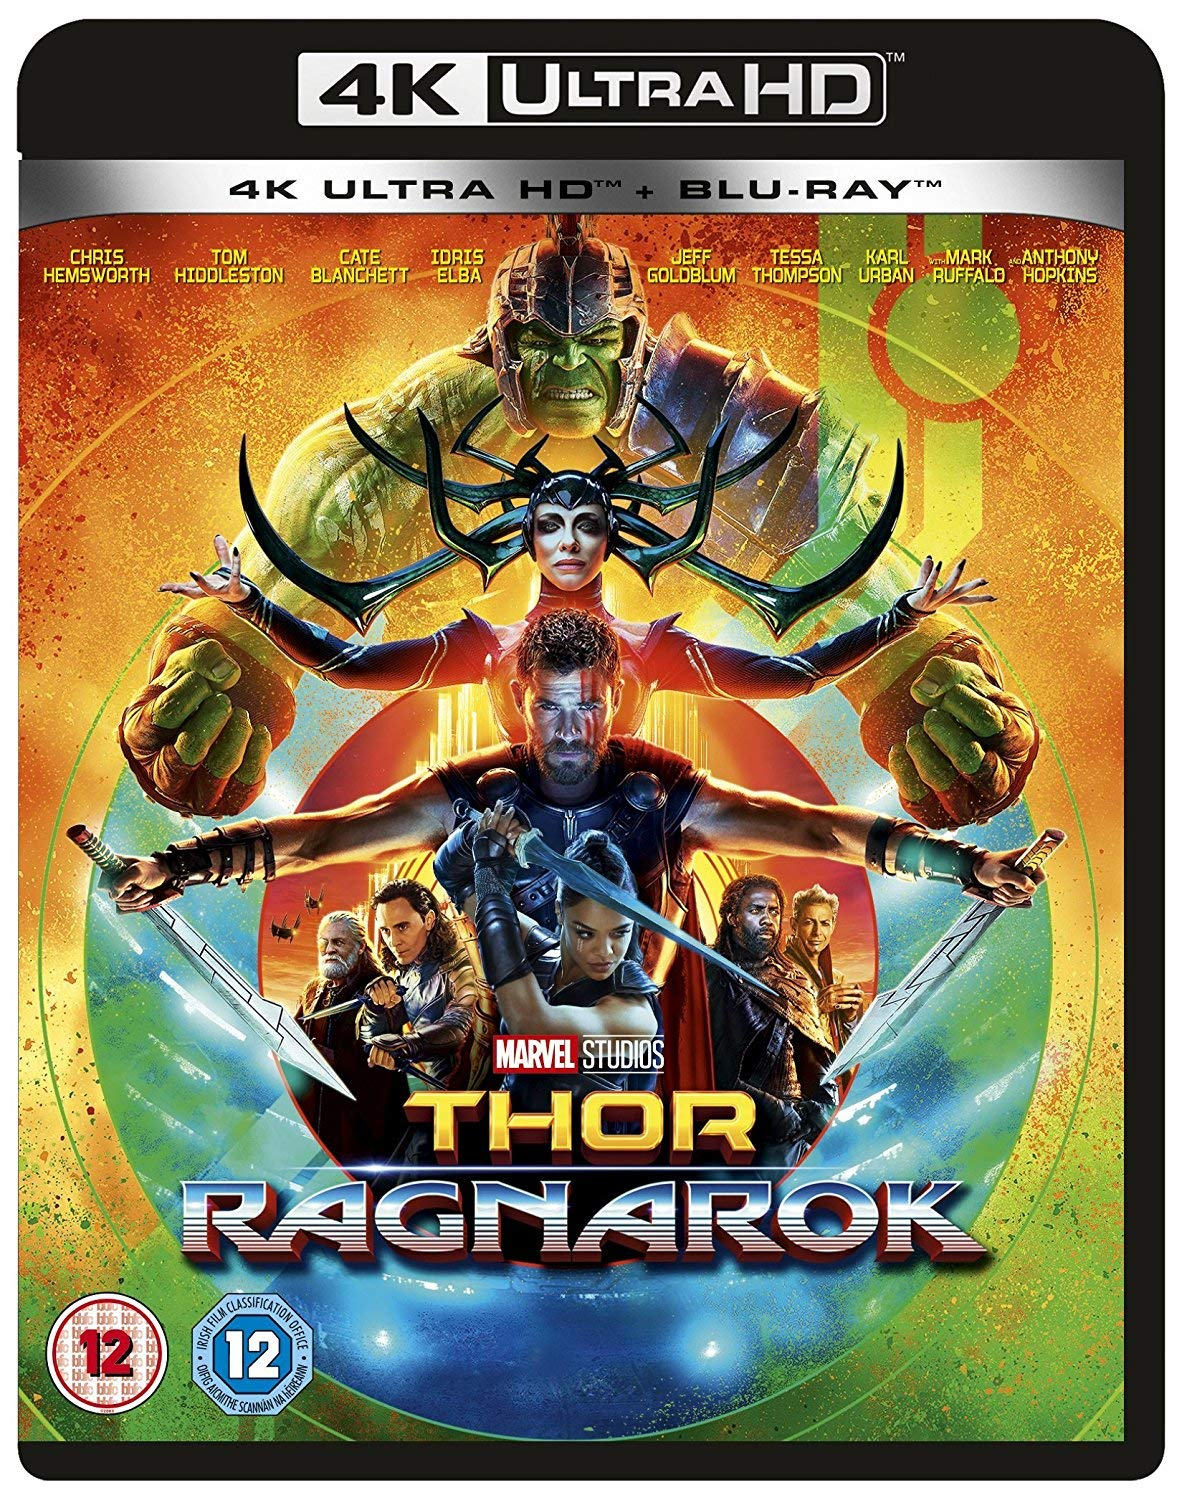 Amazon Com Thor Ragnarok 4k Including 2d Blu Ray 2017 Region Free Chris Hemsworth Tom Hiddleston Benedict Cumberbatch Idris Elba Tessa Thompson Jaimie Alexander Cate Blanchett Anthony Hopkins Karl Urban Mark Ruffalo Sam Neill